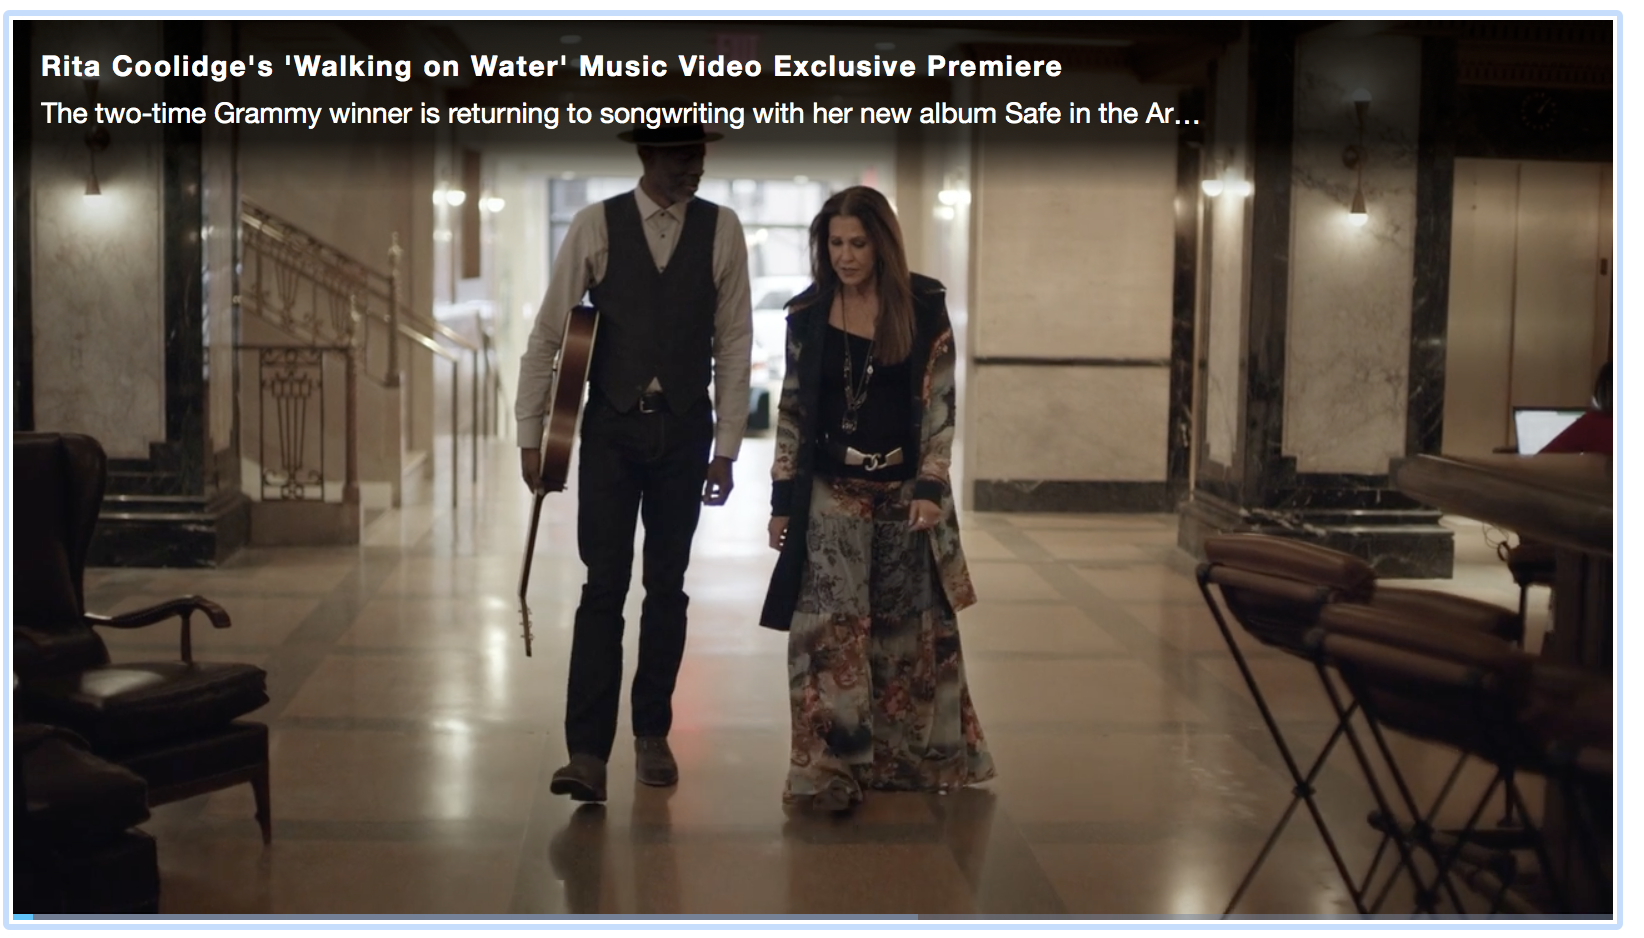 """The world premiere of Rita's music video of """"Walking on Water"""" featuring Keb Mo from her upcoming record """"Safe in the Arms of Time"""" due out May 4th. -"""